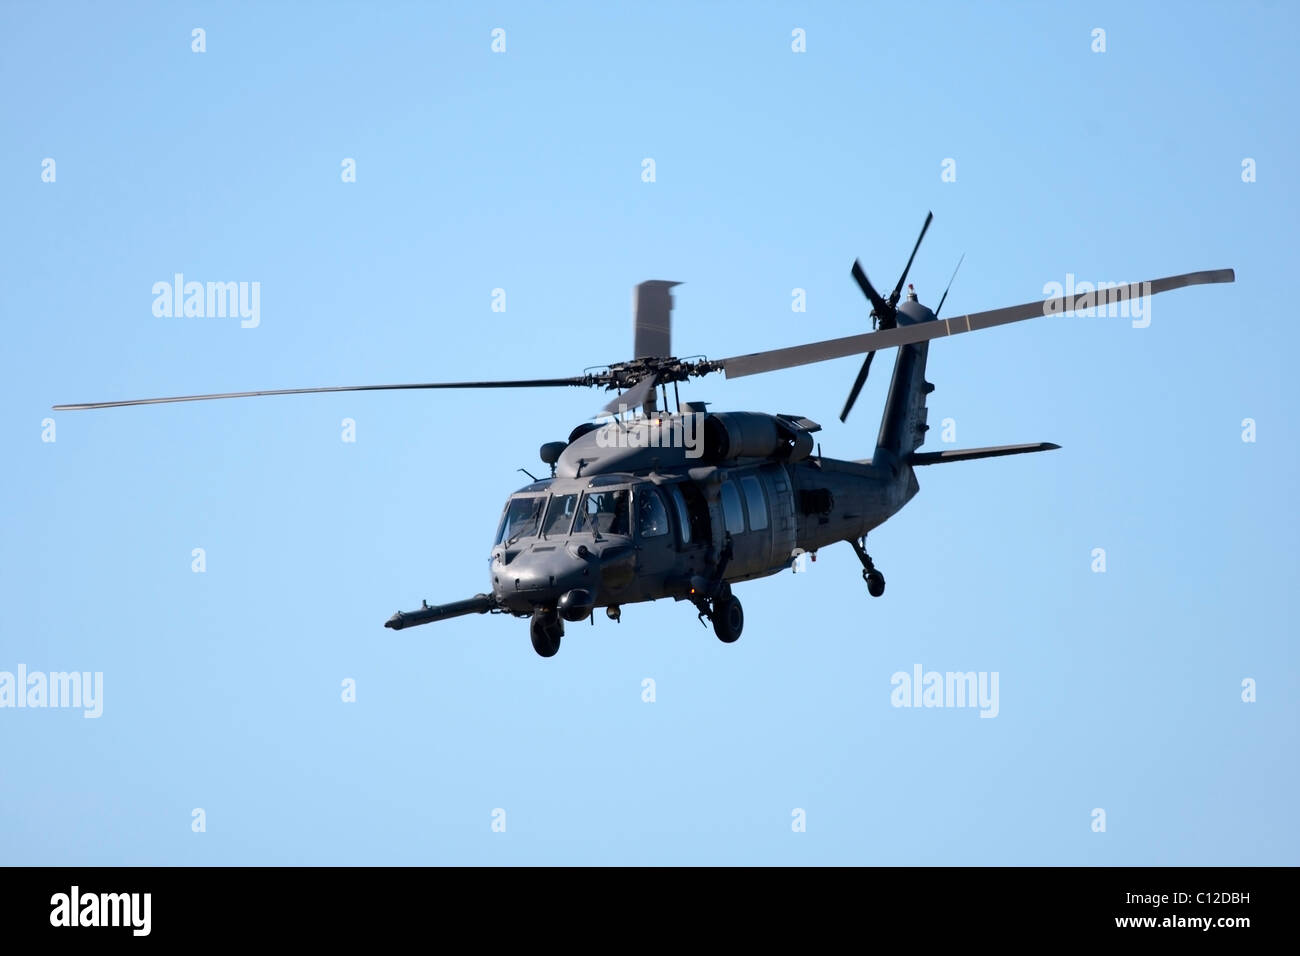 Military helicopter at air show in Cape Town South Africa September 2010 - Stock Image